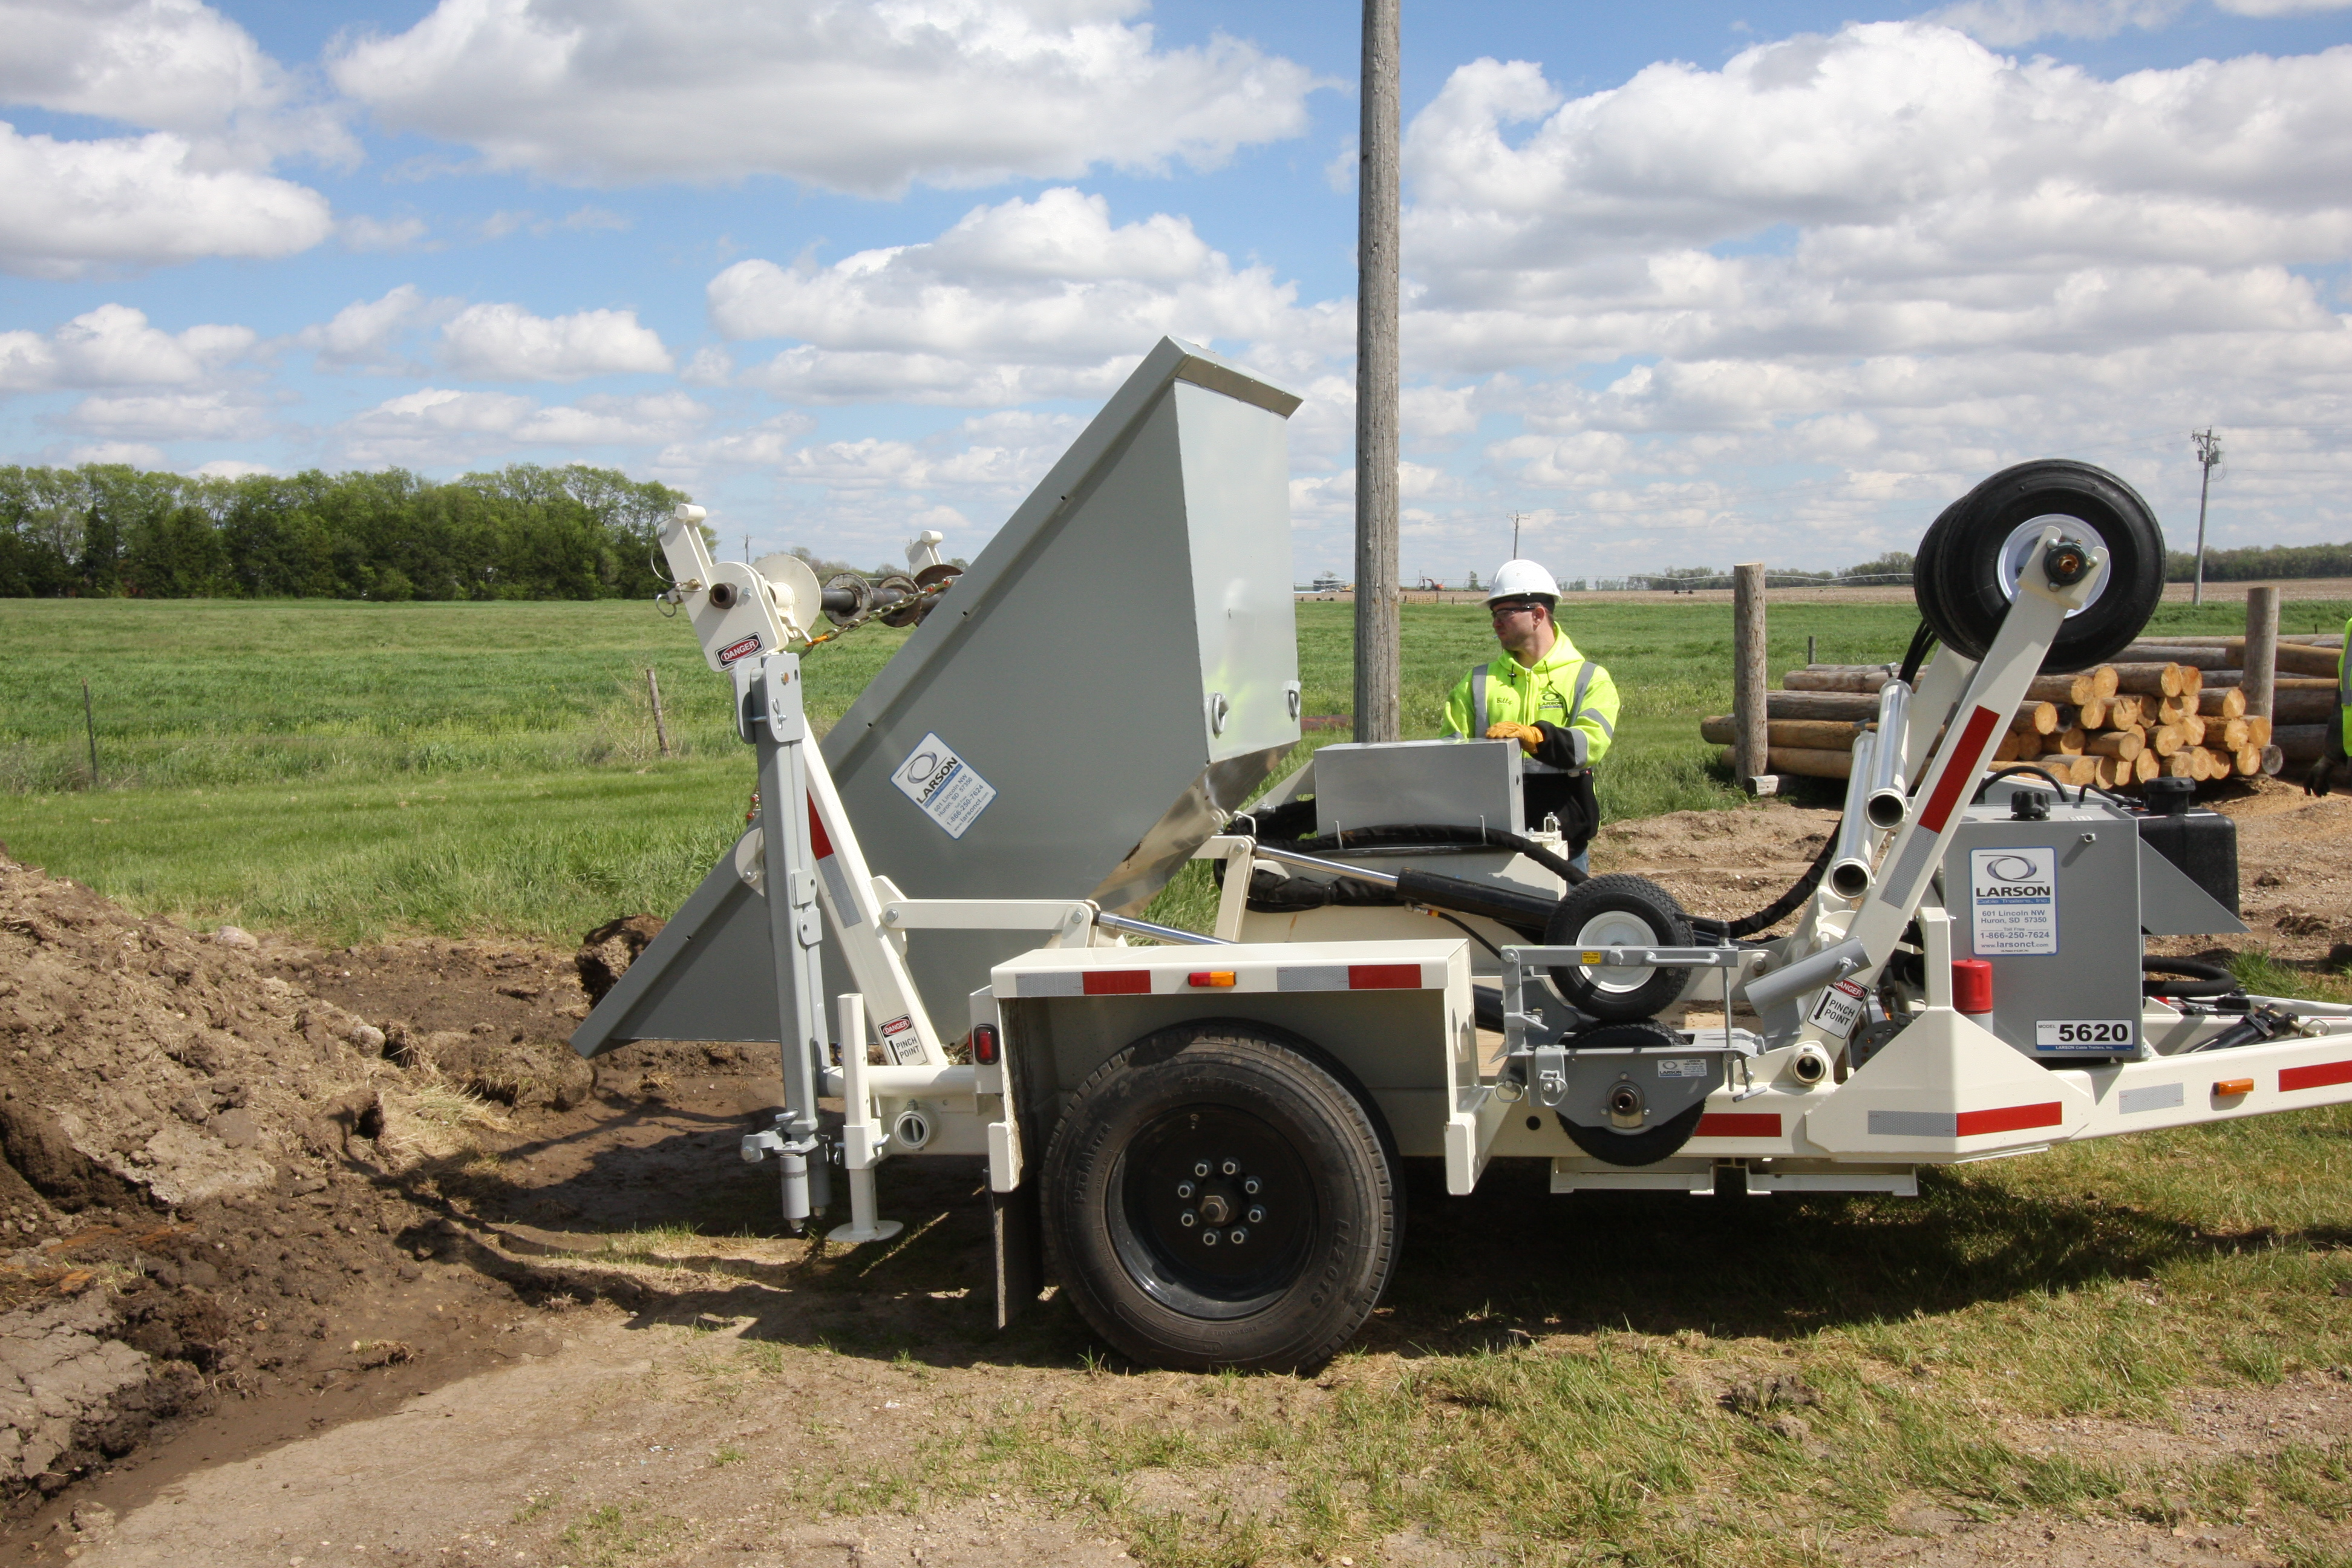 Admirable Lct 5620 Larson Cable Trailers Wiring 101 Taclepimsautoservicenl